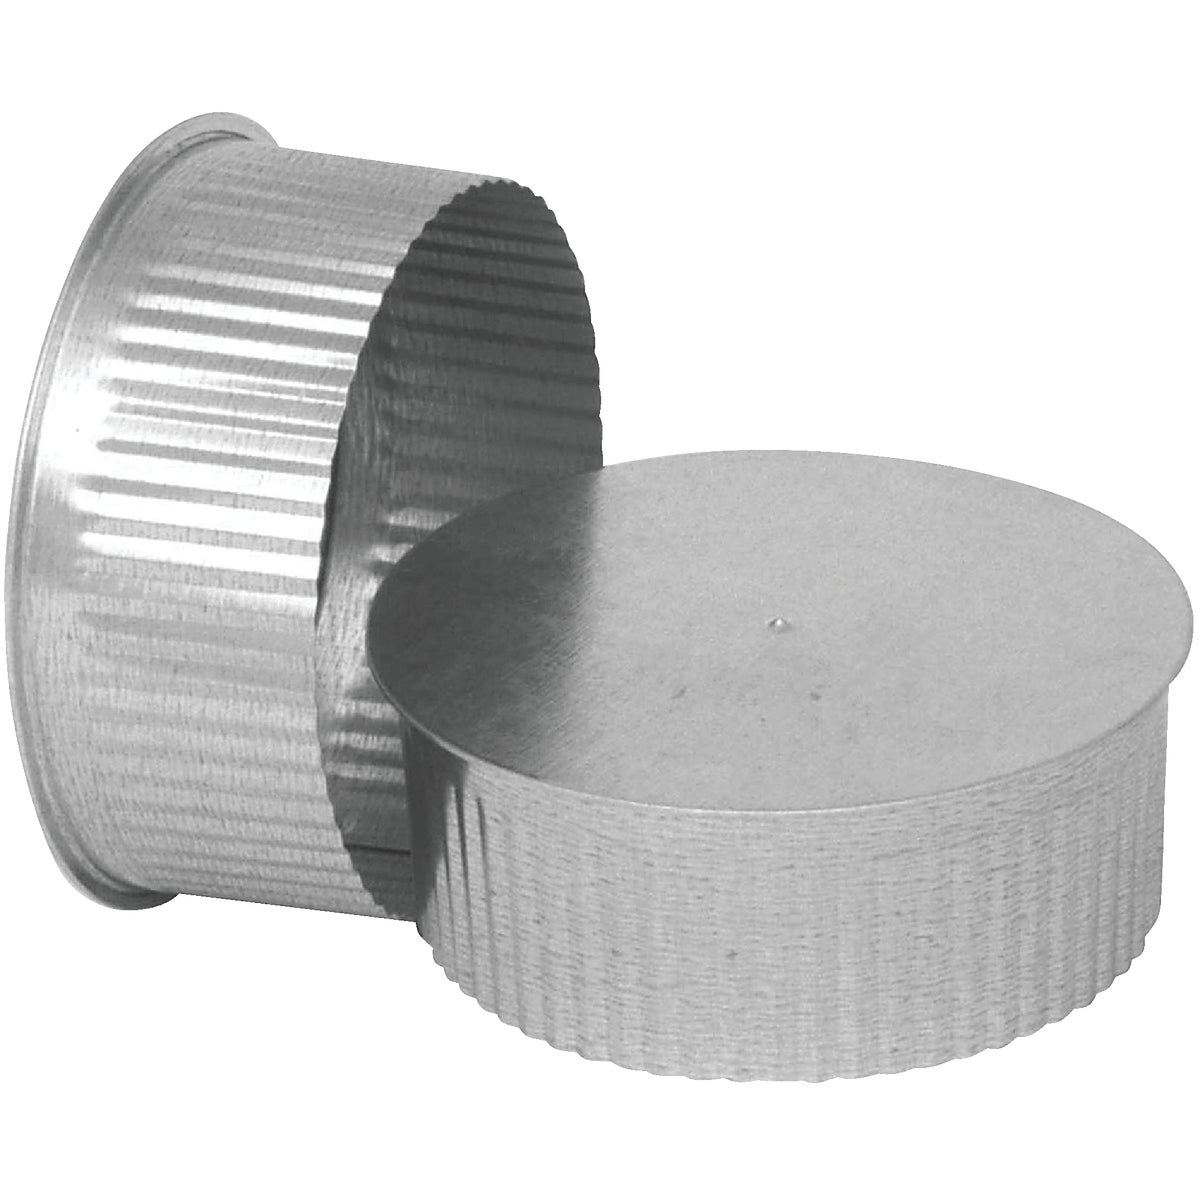 "5"" 30GA GALV TEE CAP - GV0734 by Imperial Mfg Group"